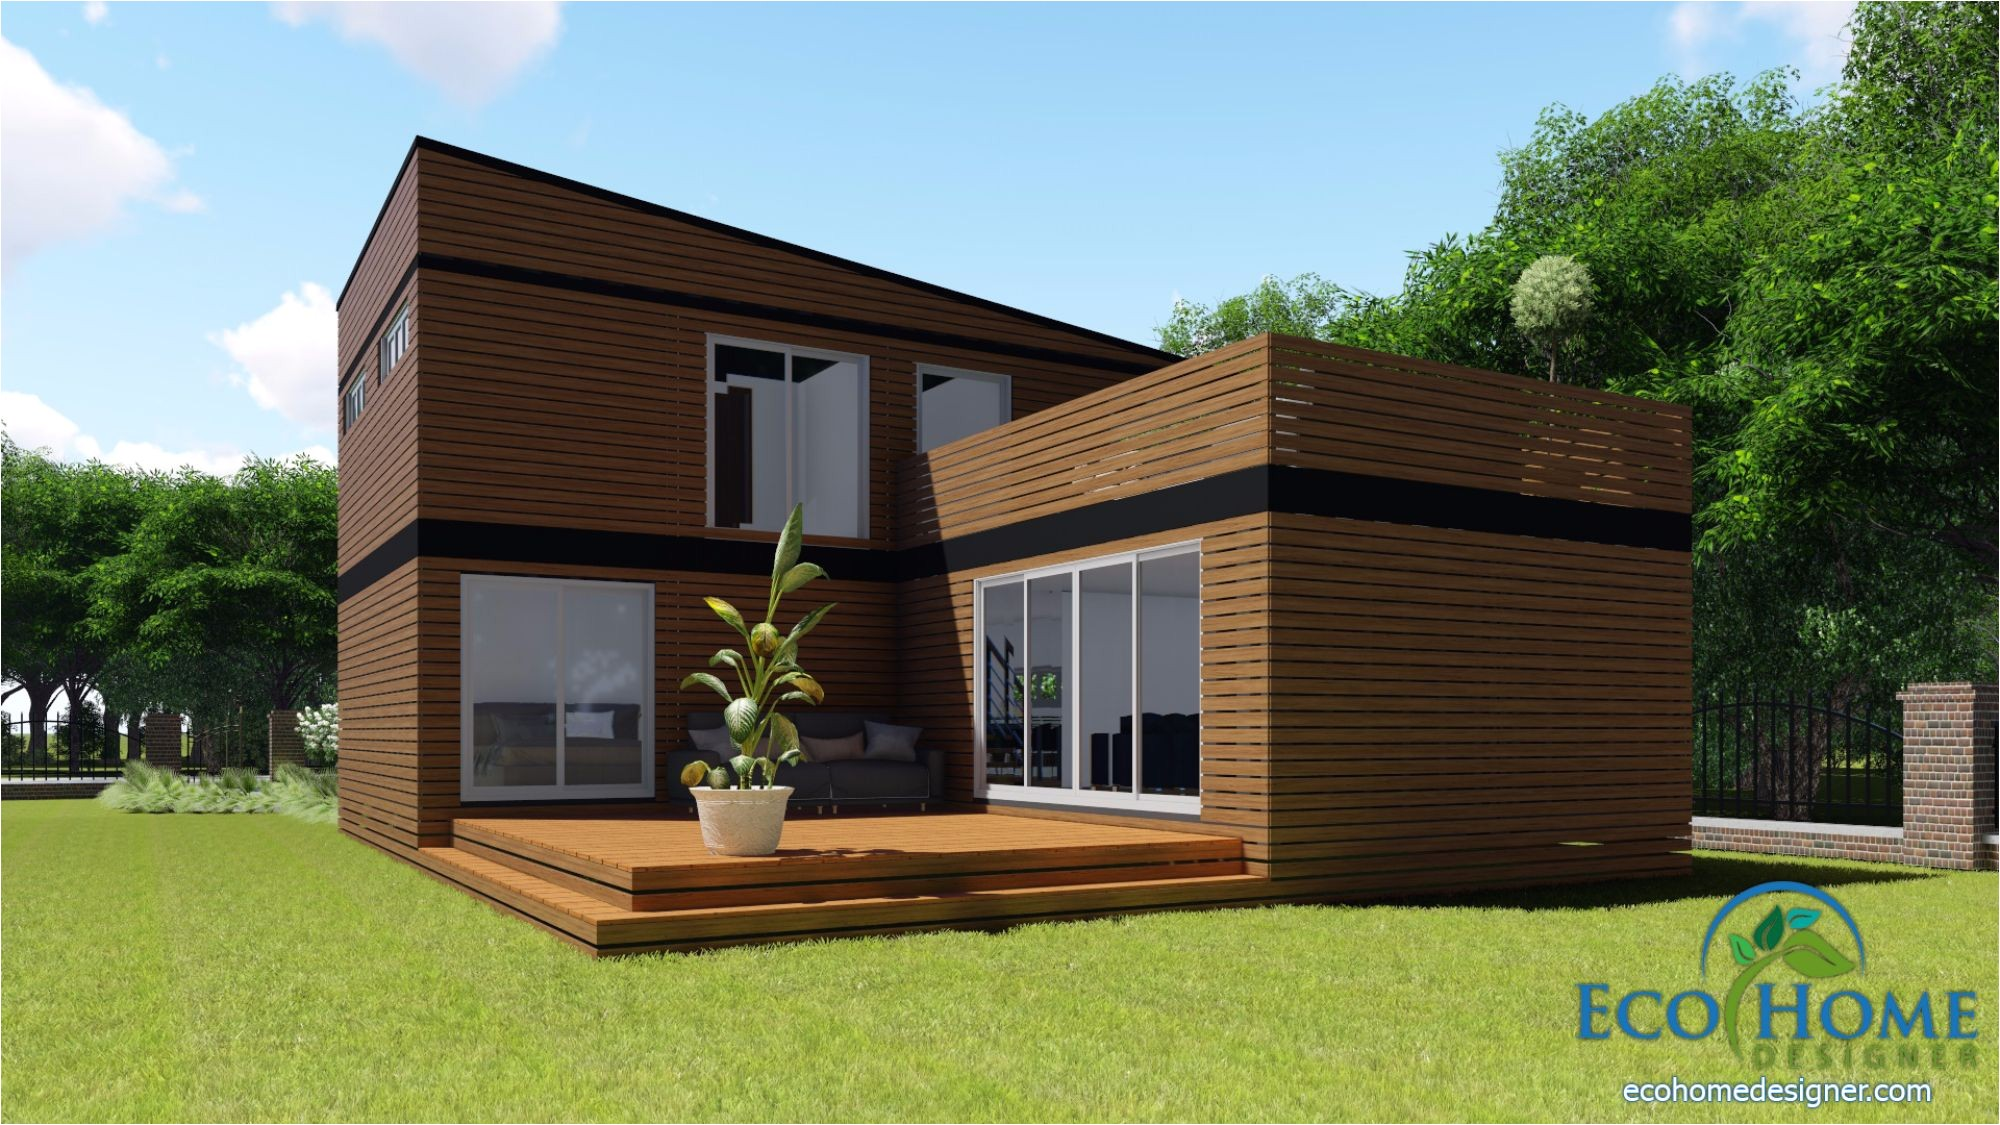 sch17 10 x 20ft 2 story container home